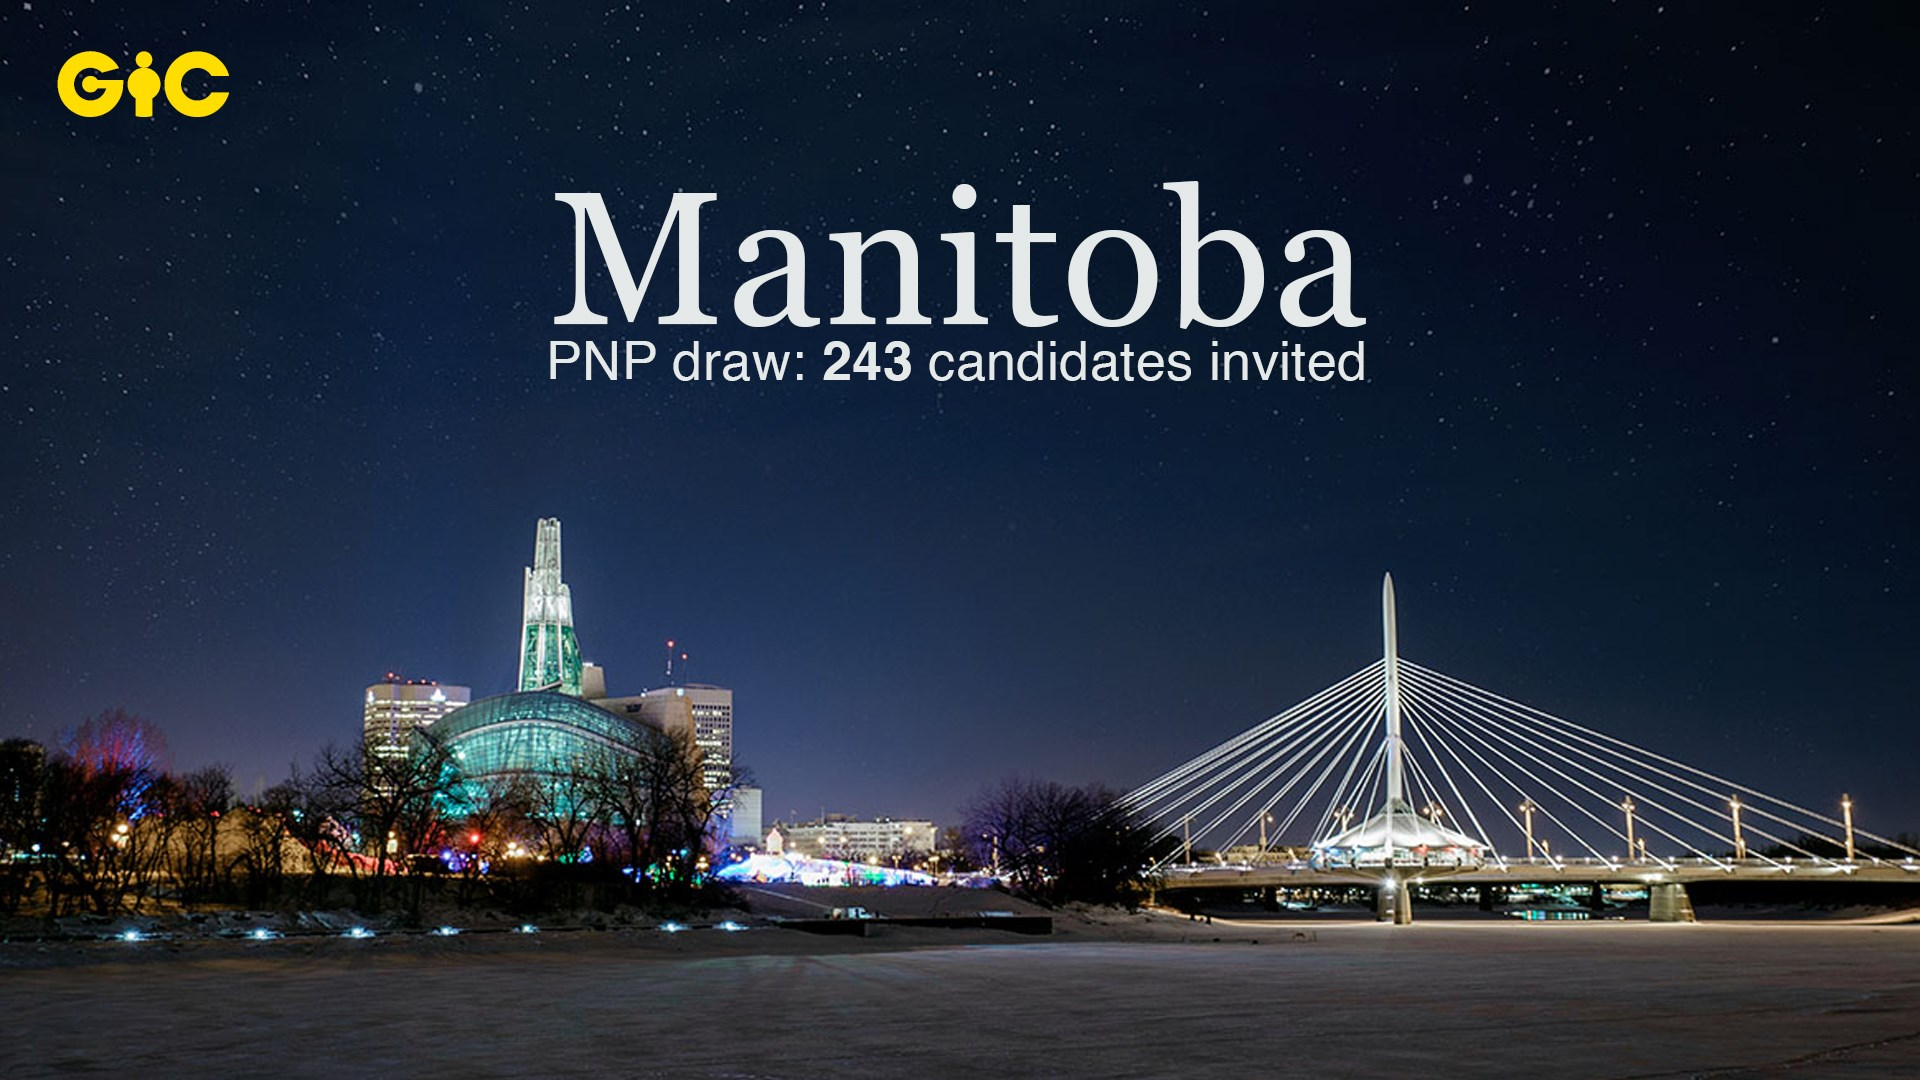 Manitoba PNP draw 243 candidates invited